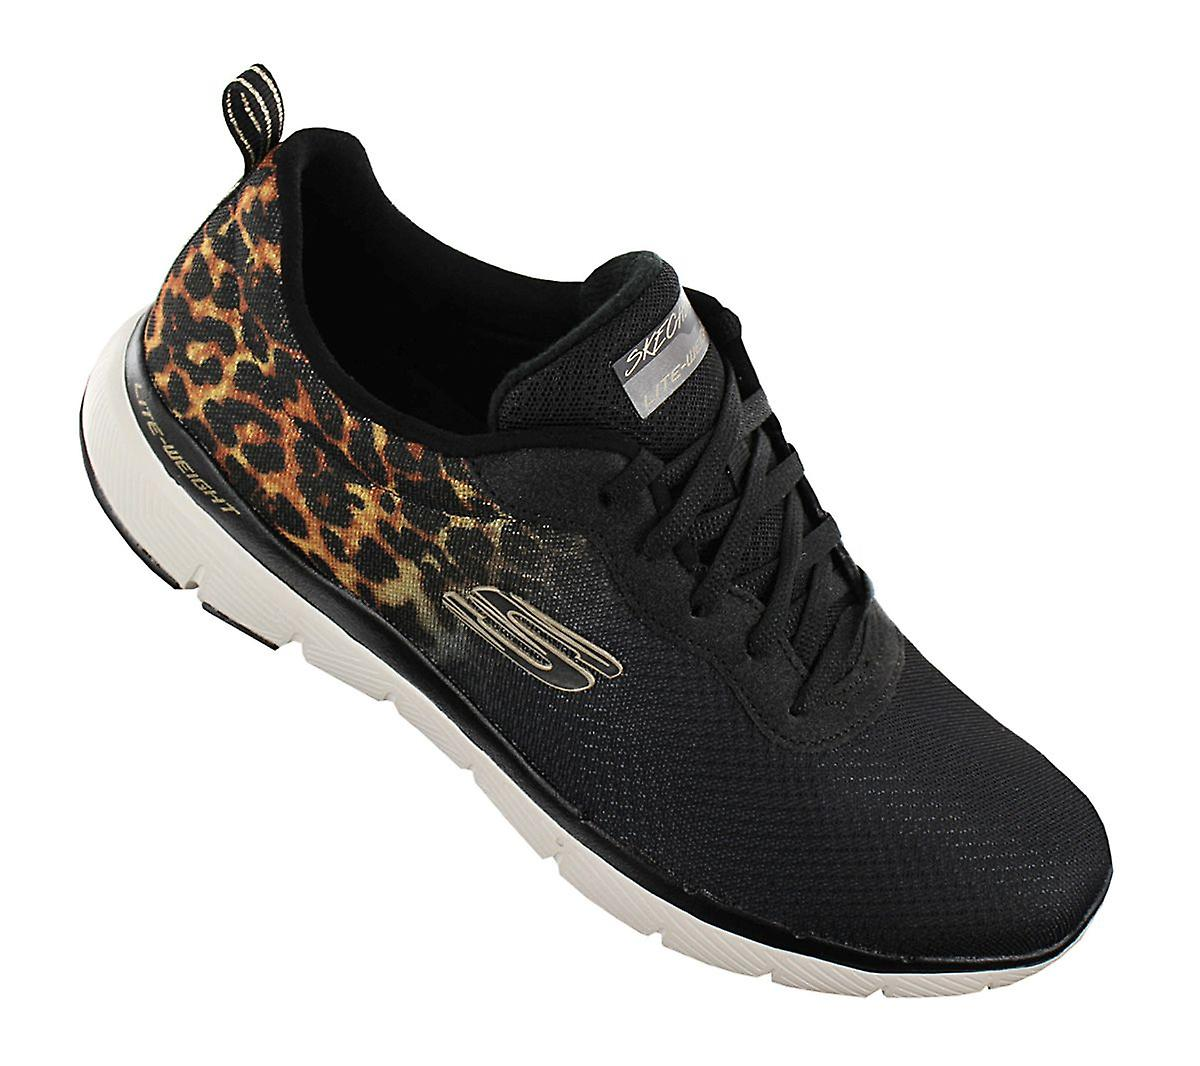 Skechers Flex Appeal 3.0 - Leopard Pounce - Women's Shoes Black 13476-BKGD Sneakers Sports Shoes